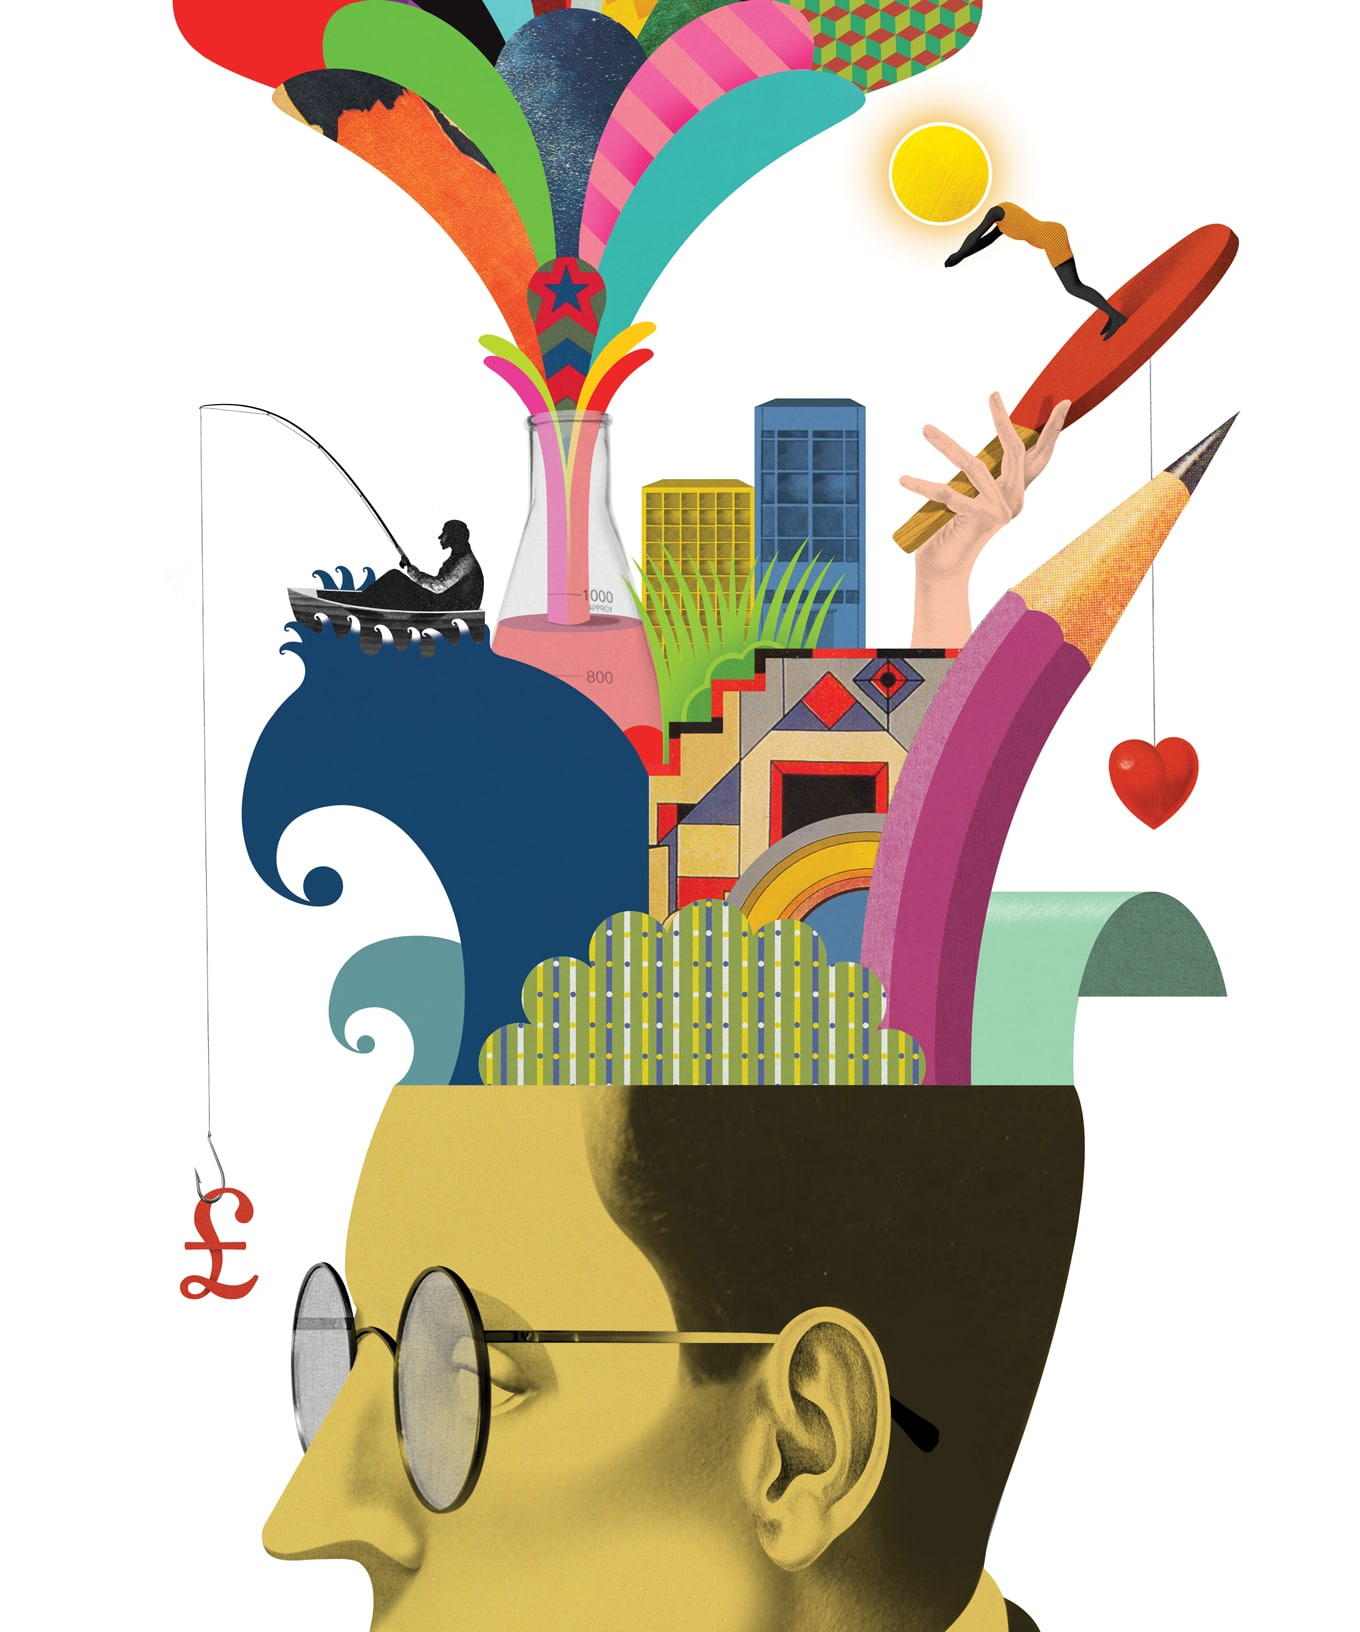 Creativity Enigma: What Could Makes Us More Creative at Work